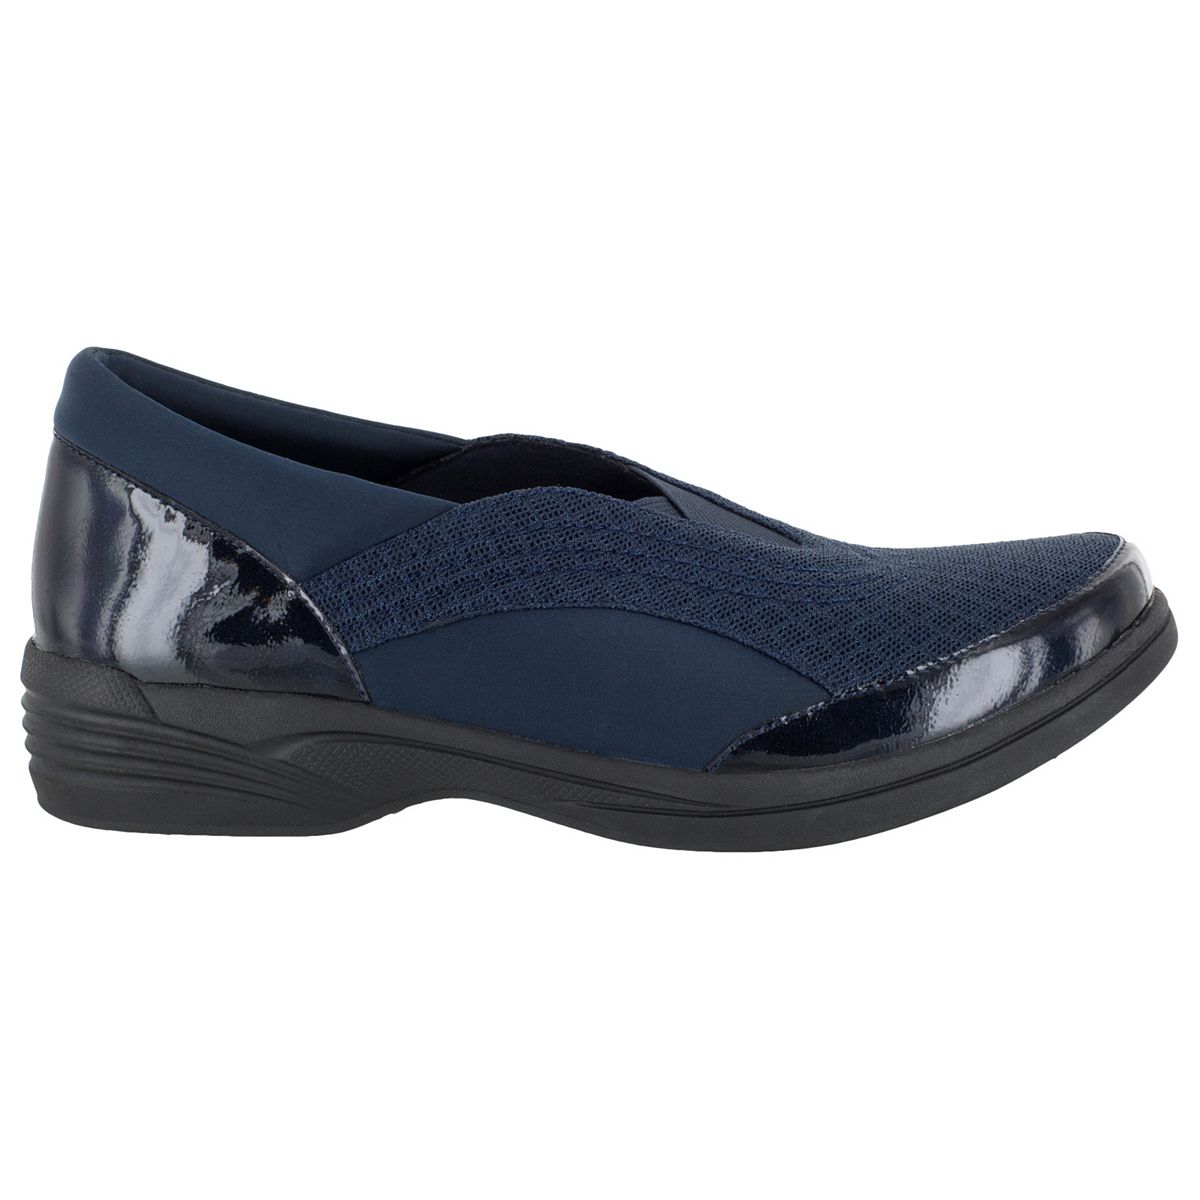 SoLite by Easy Street Spontaneous Women's Shoes Iy12K